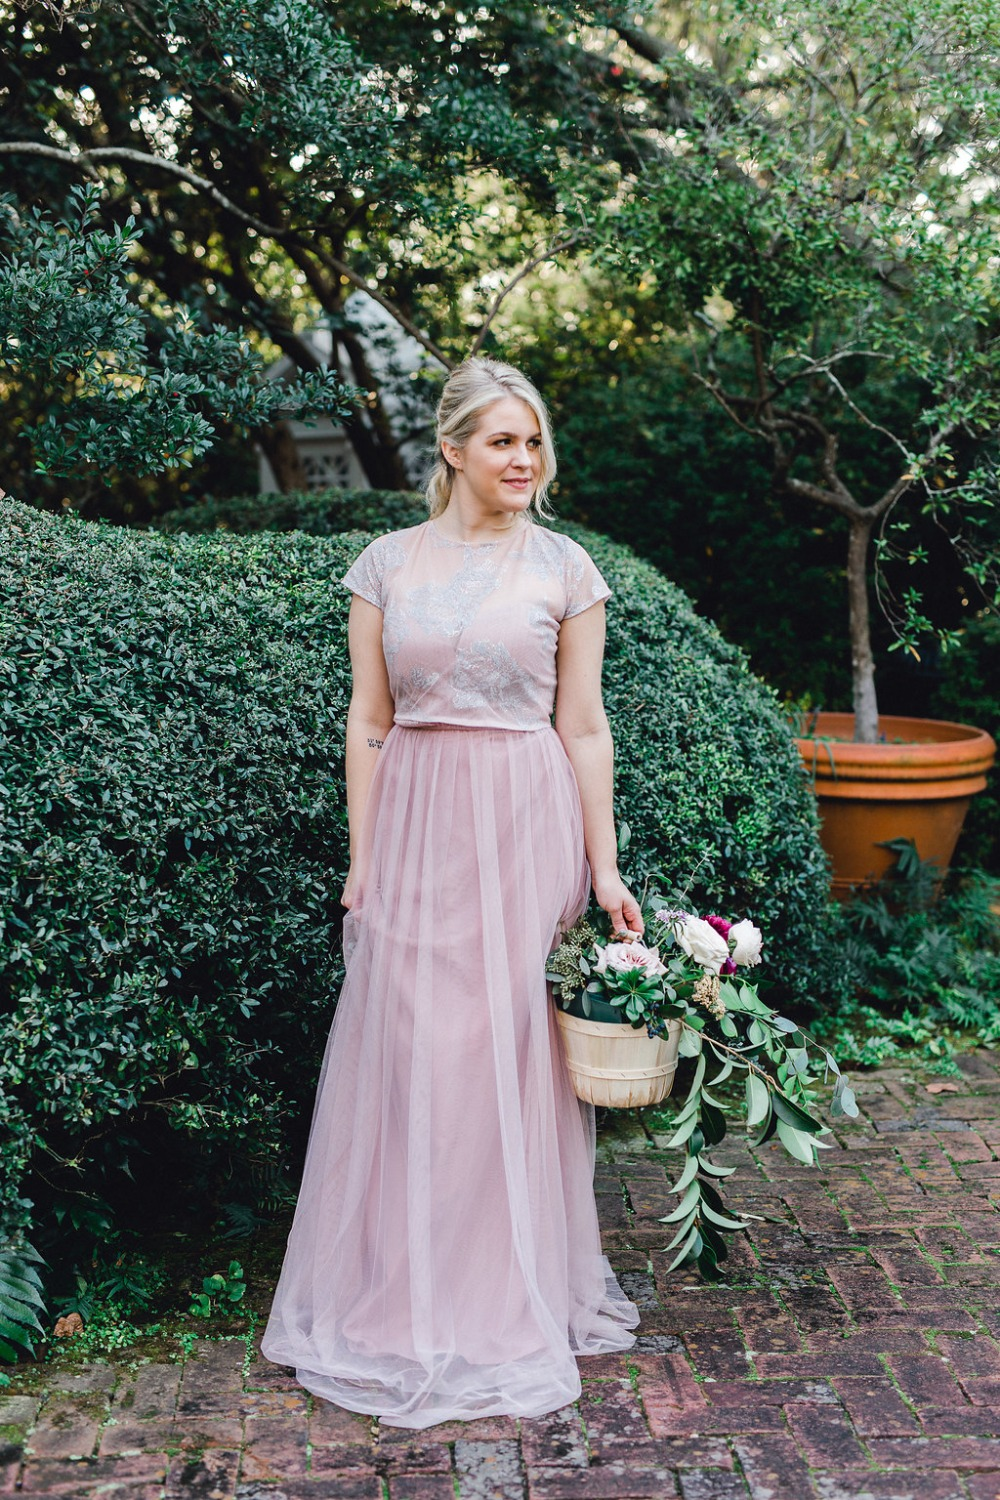 This Organic Garden Wedding Inspiration will Brighten Your Day